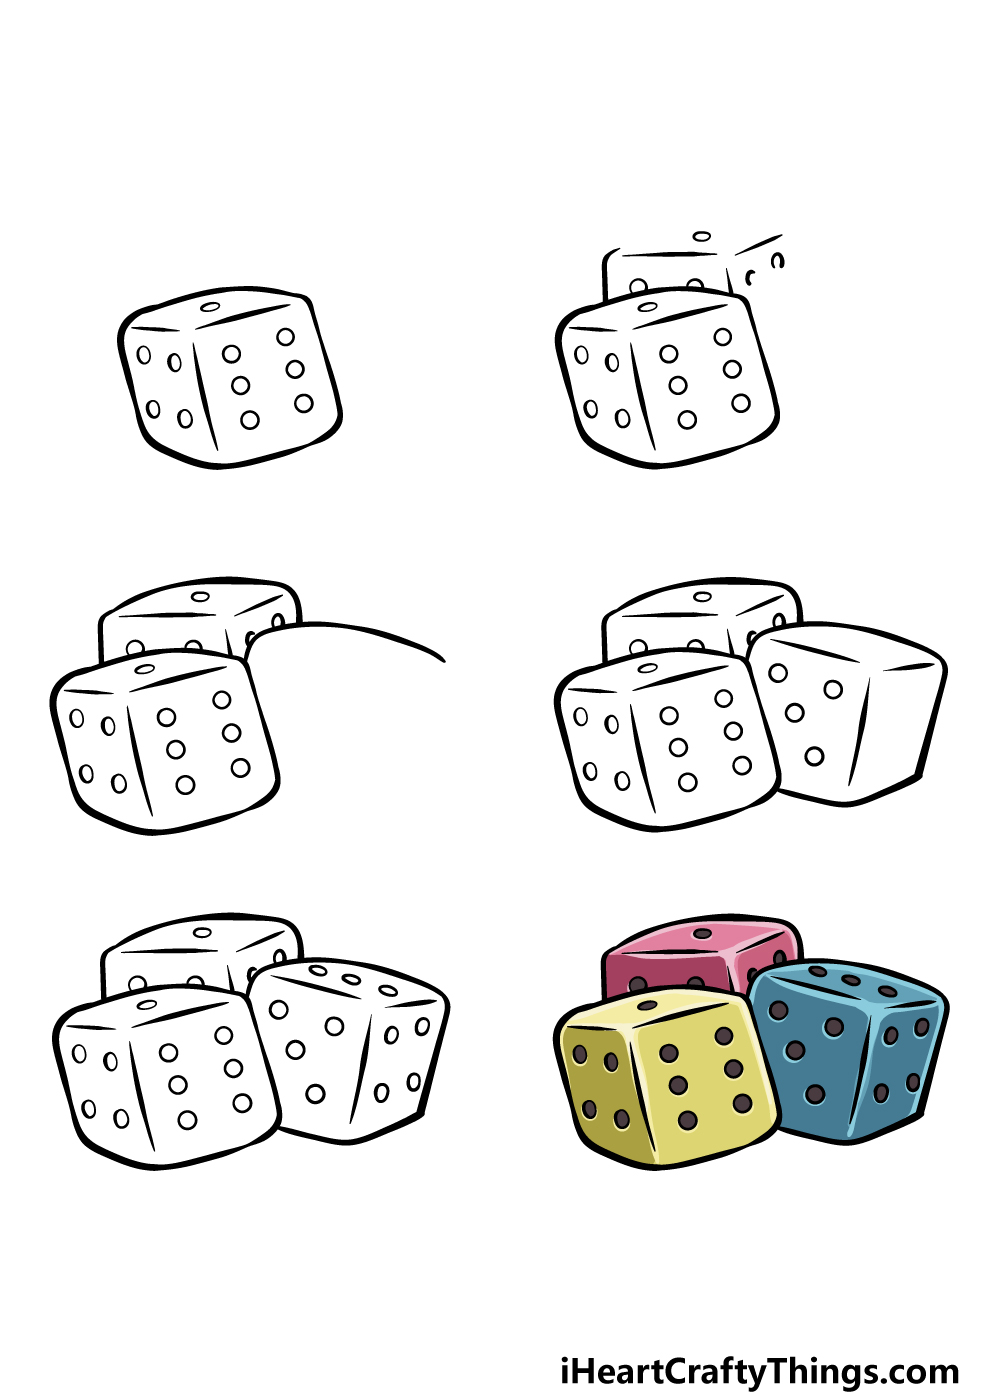 how to draw the dice in 6 steps